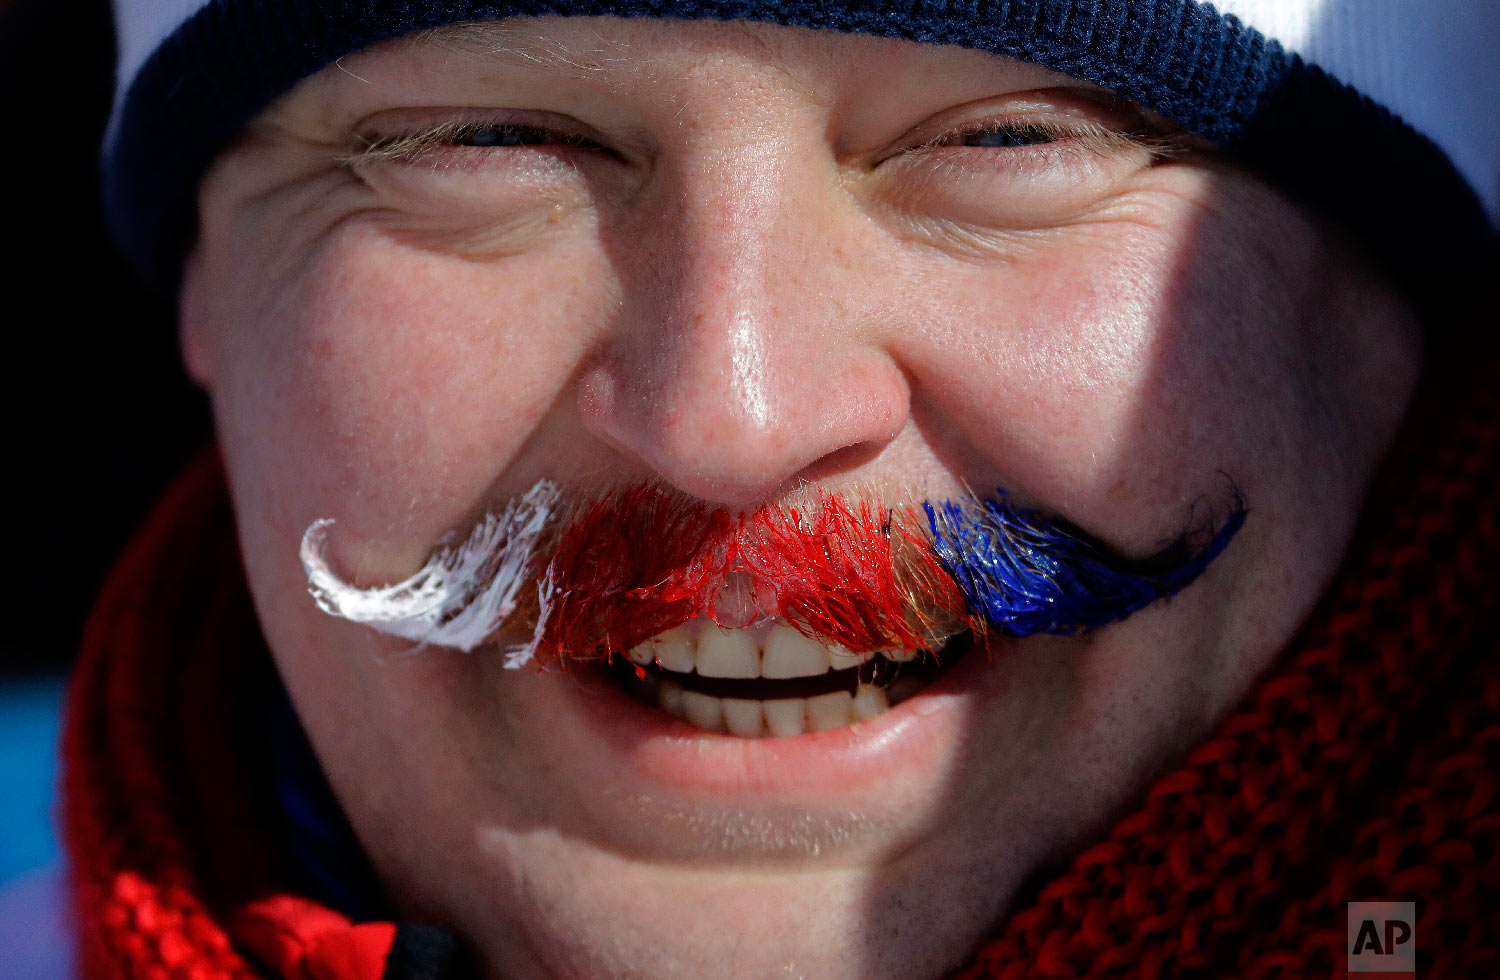 A fan of SarkaPancochova, of the Czech Republic, waits for competition to begin prior to the women's slopestyle final at Phoenix Snow Park at the 2018 Winter Olympics in Pyeongchang, South Korea, Monday, Feb. 12, 2018. (AP Photo/Lee Jin-man)